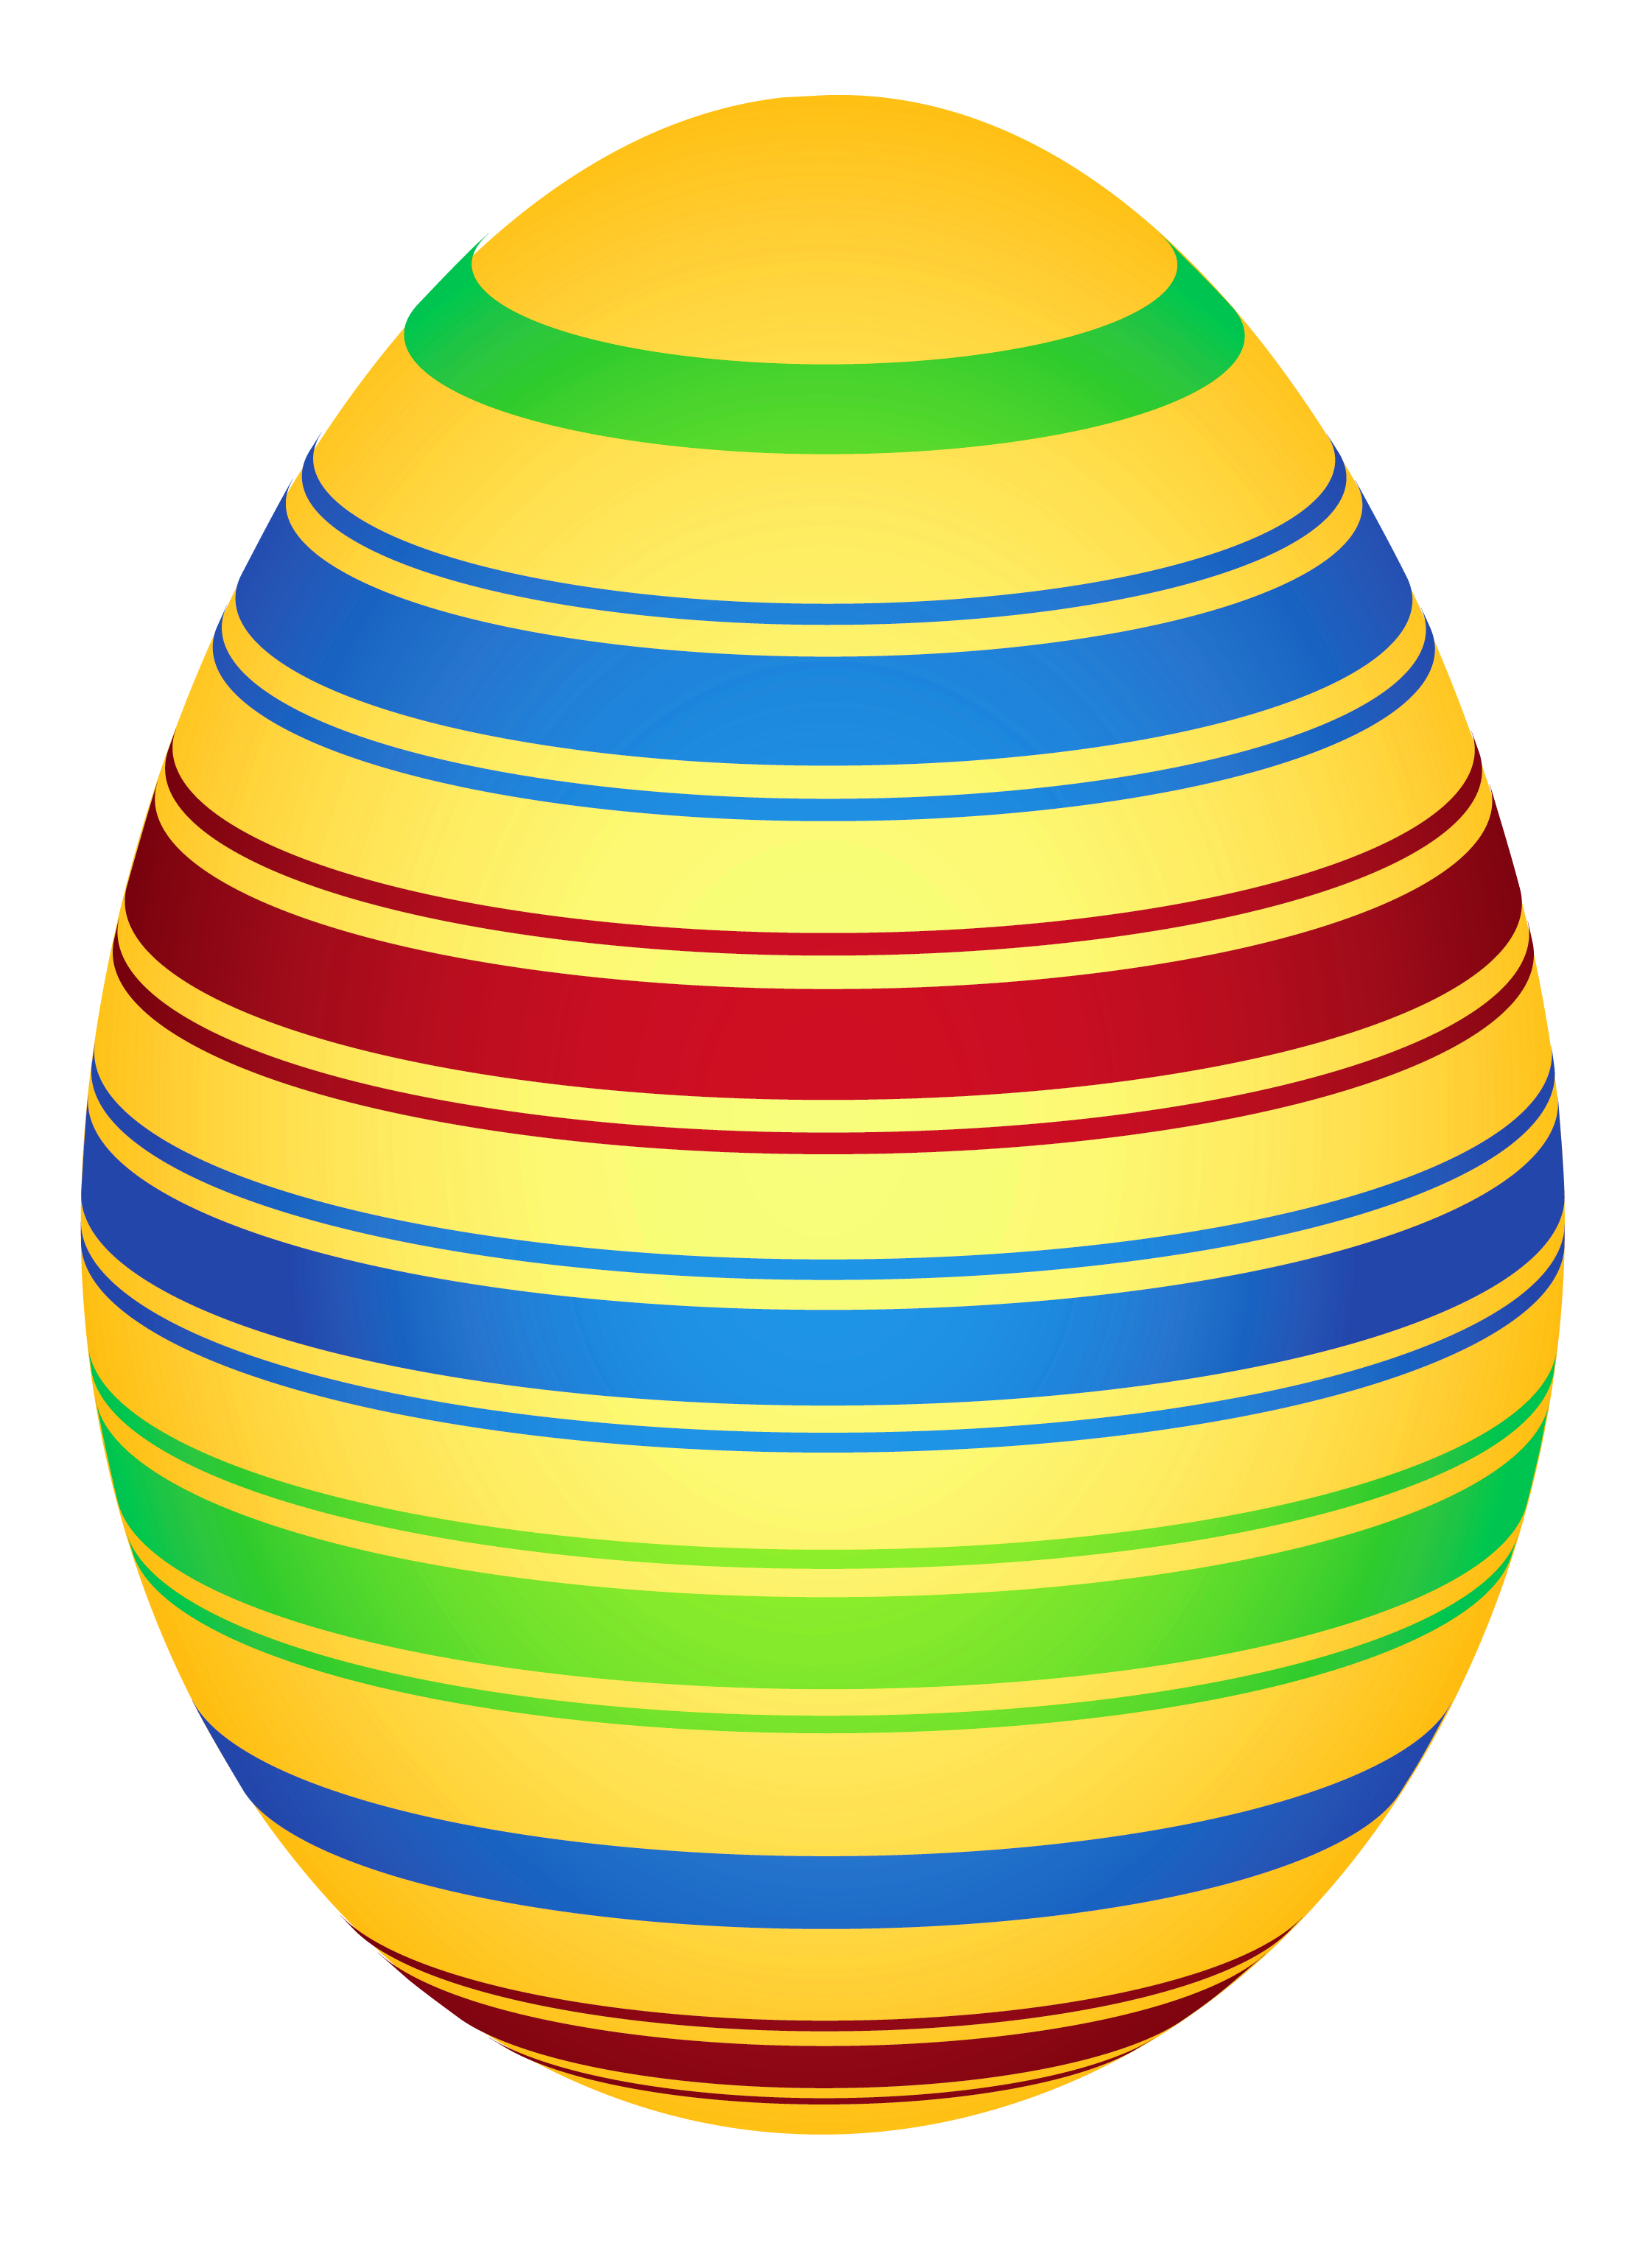 Cool clipart easter. Yellow colorful egg png